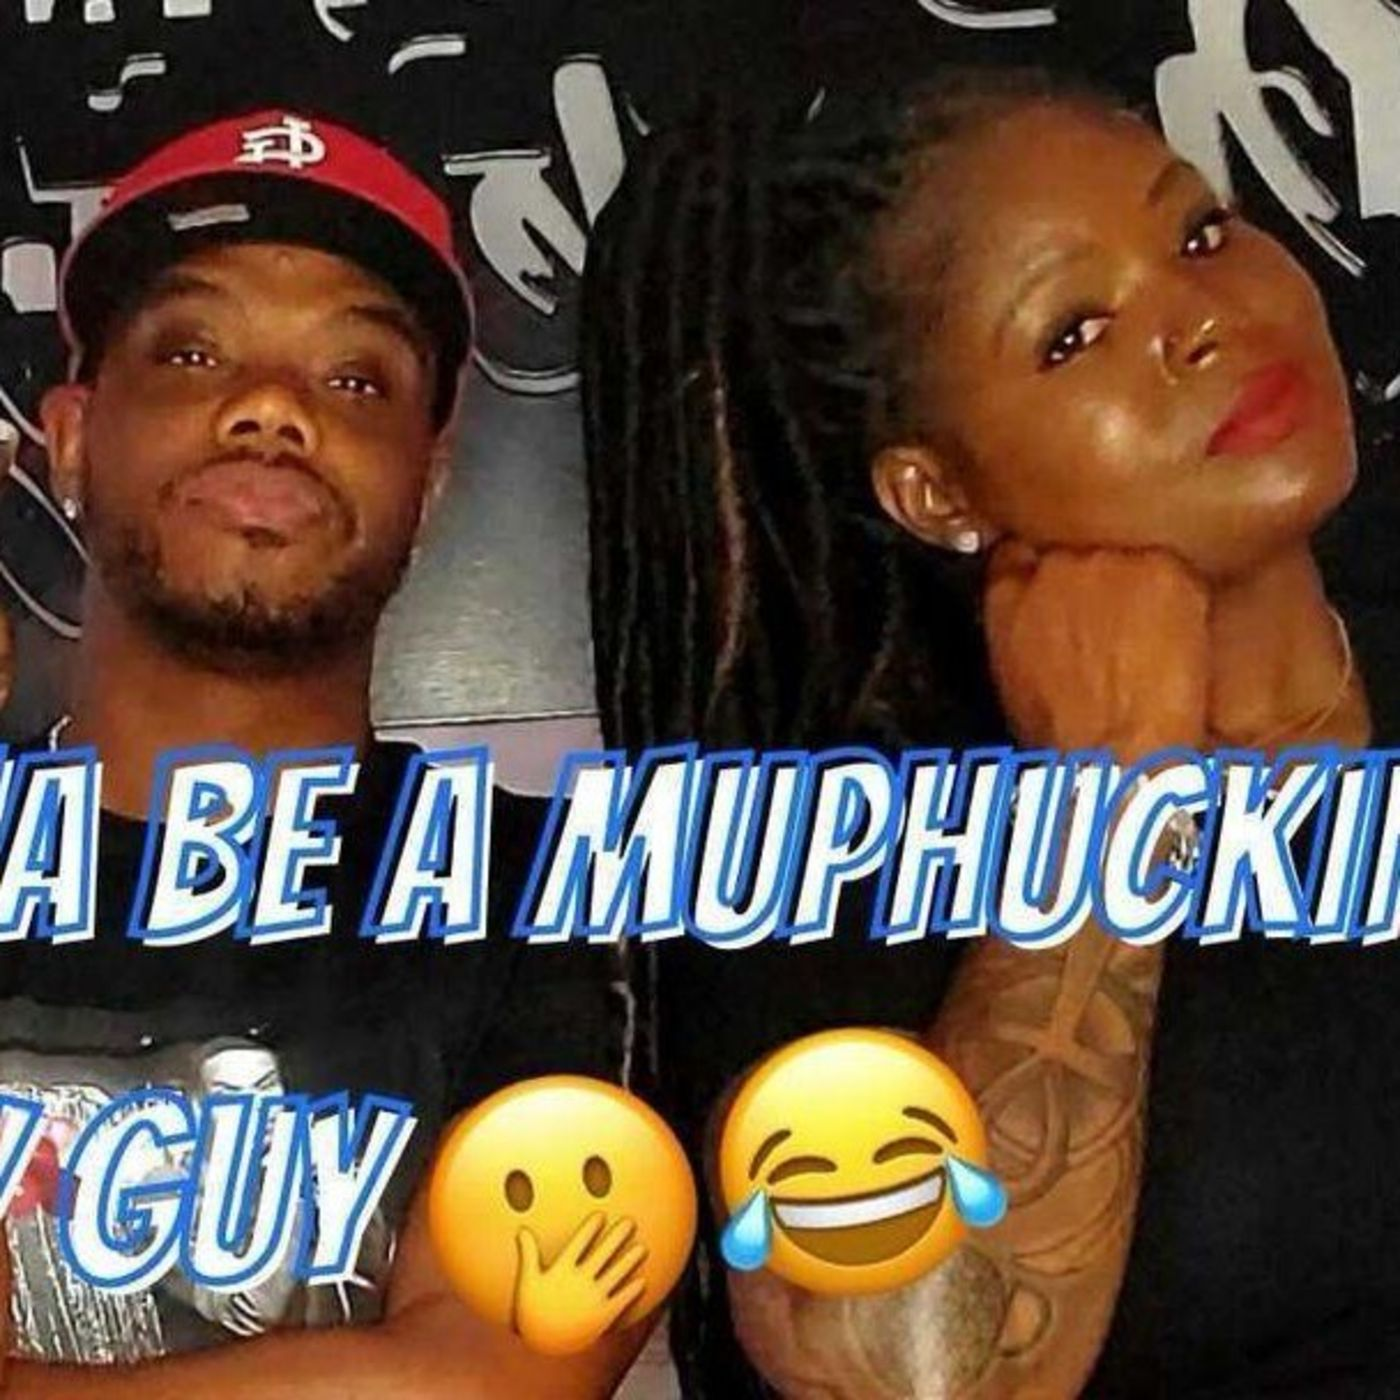 """Season 2: Ep.14 🤭 """"Wanna Be a MuPhucking Funny Guy""""😂 w/Comedian Willie C"""